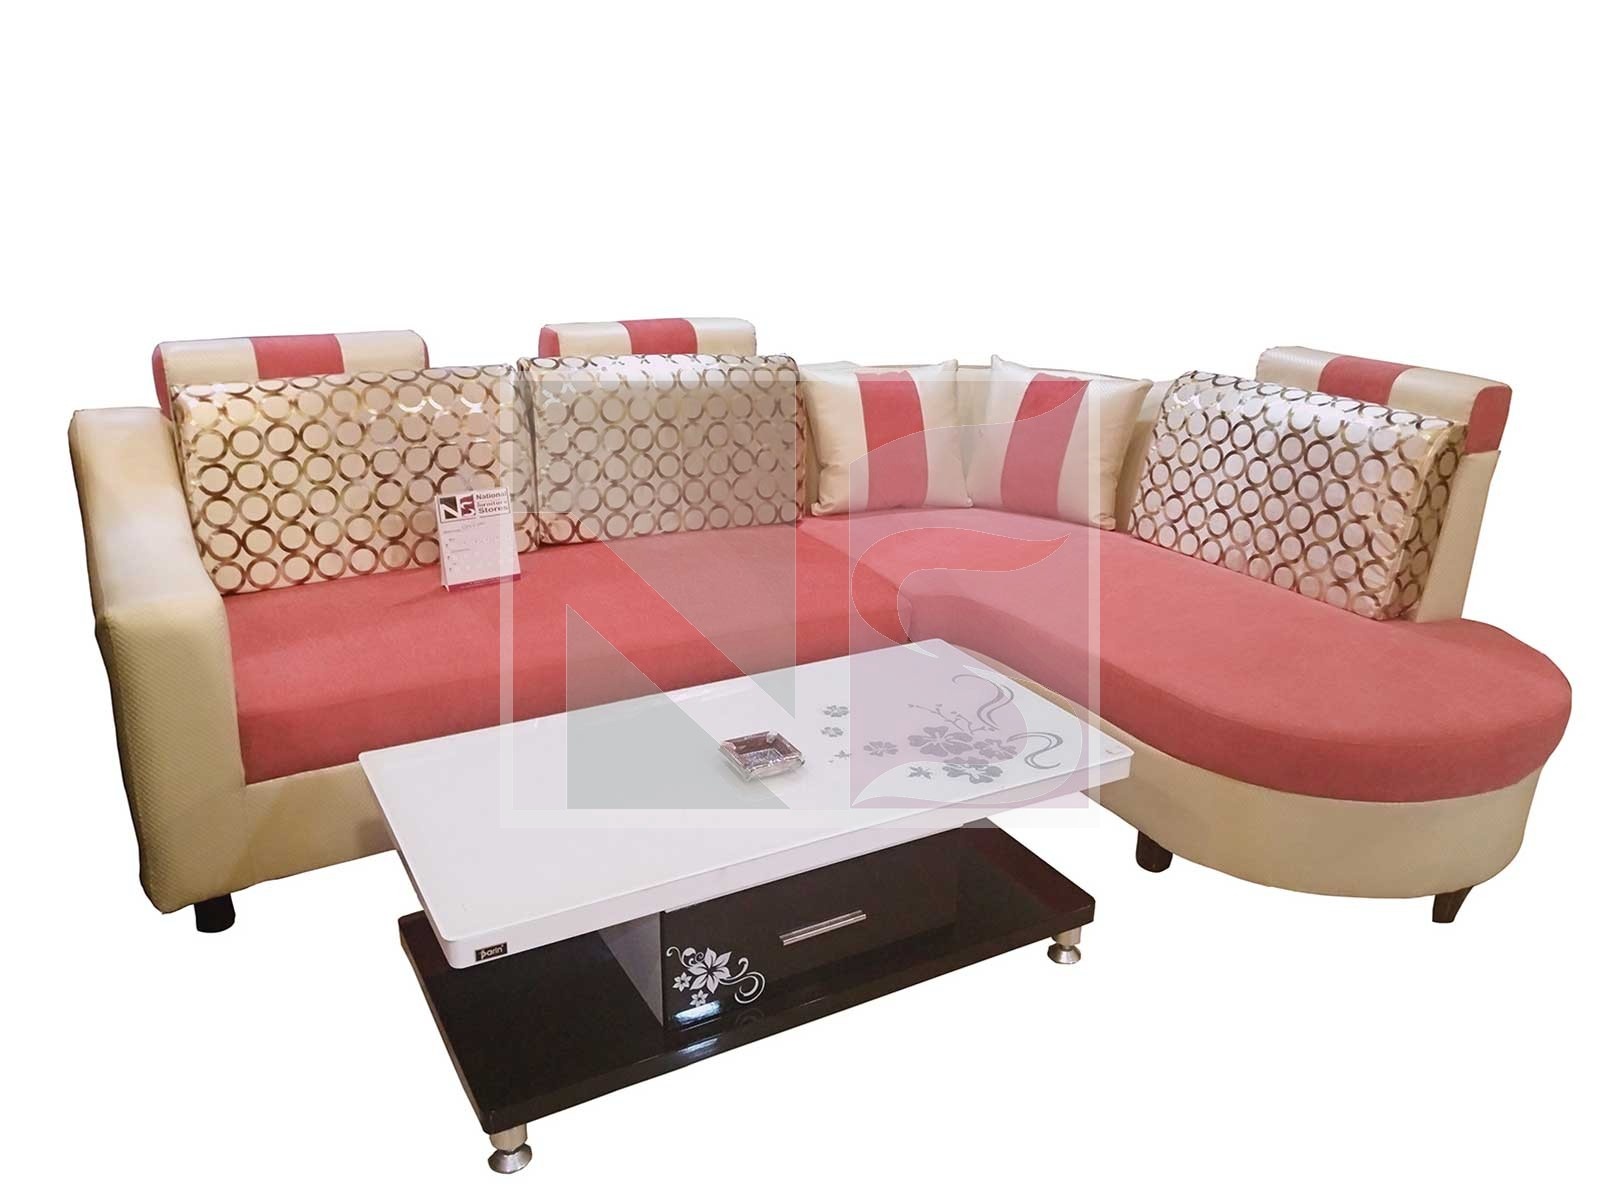 100 Online Home Furnishing Stores In India Modern Furniture Contemporary Furniture B